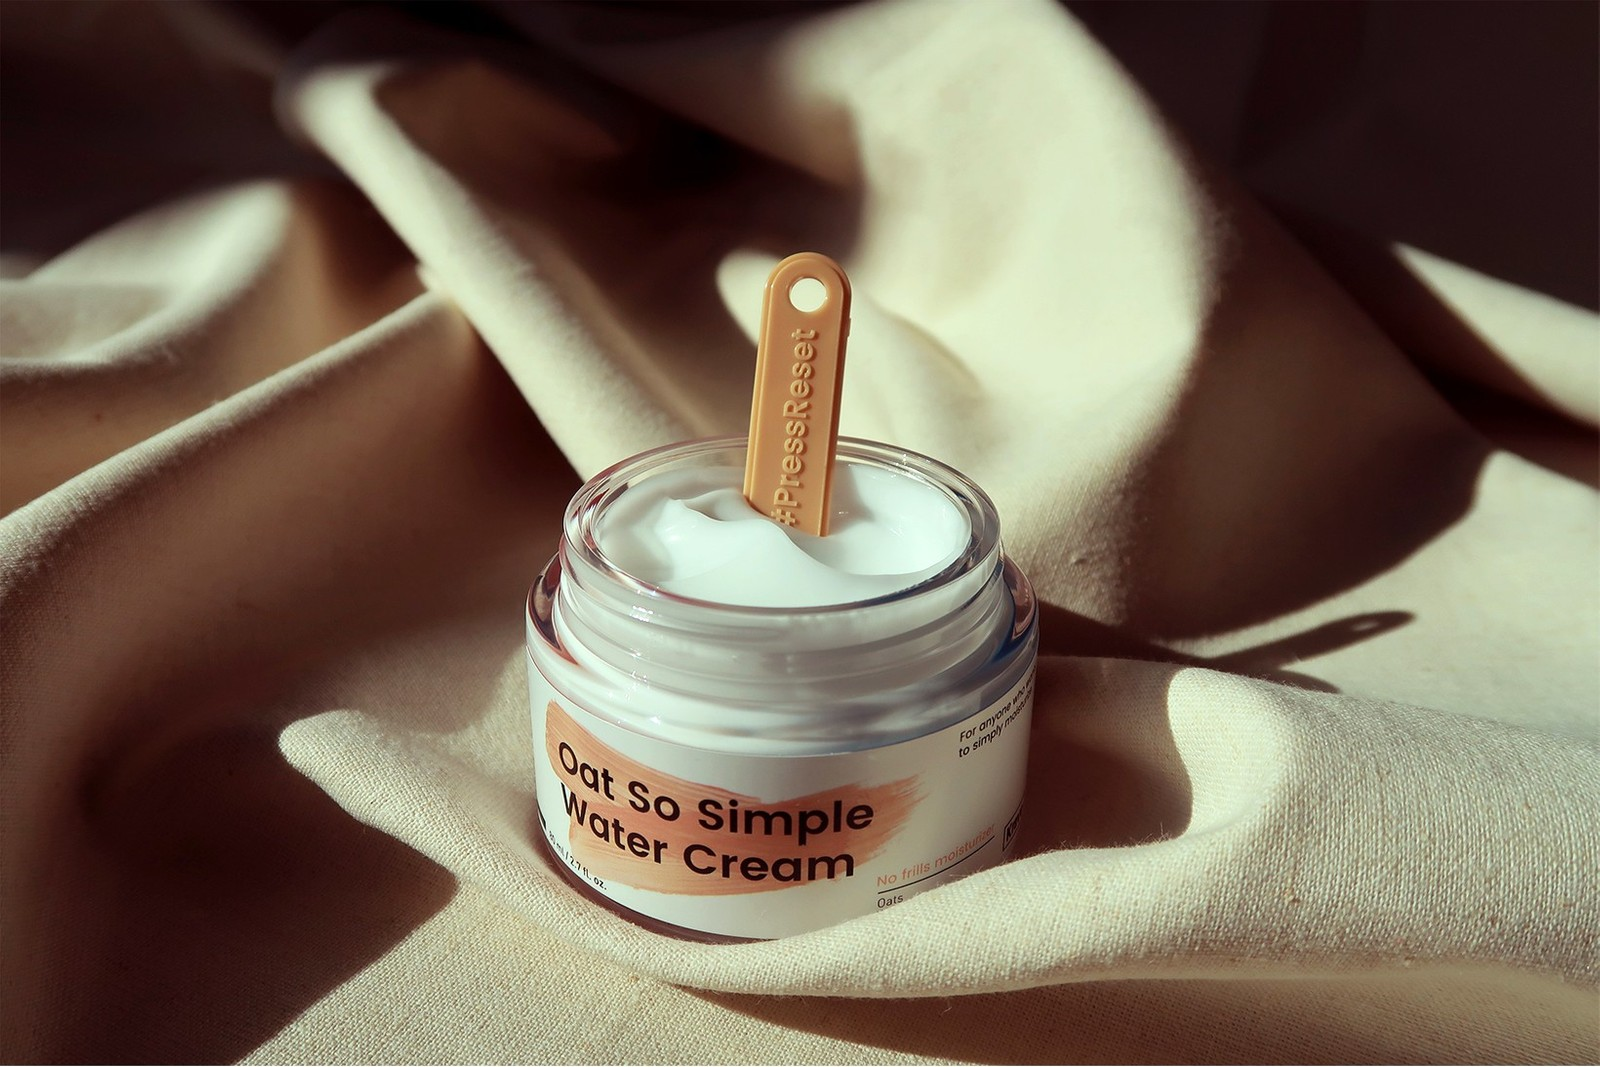 krave beauty oat so simple water facial cream sustainable eco-friendly korean brands